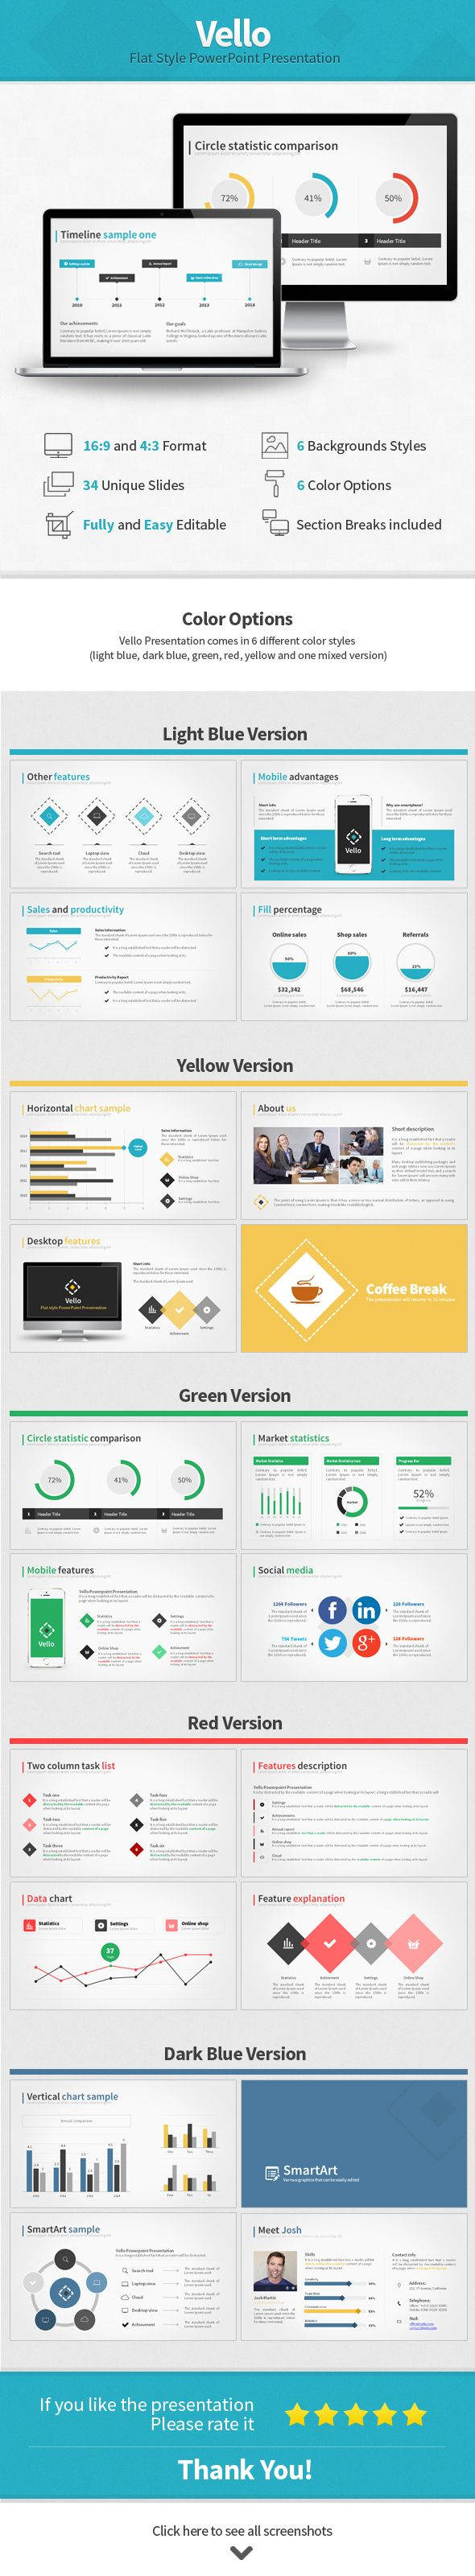 12 best flat powerpoint templates images on pinterest | powerpoint, Powerpoint templates